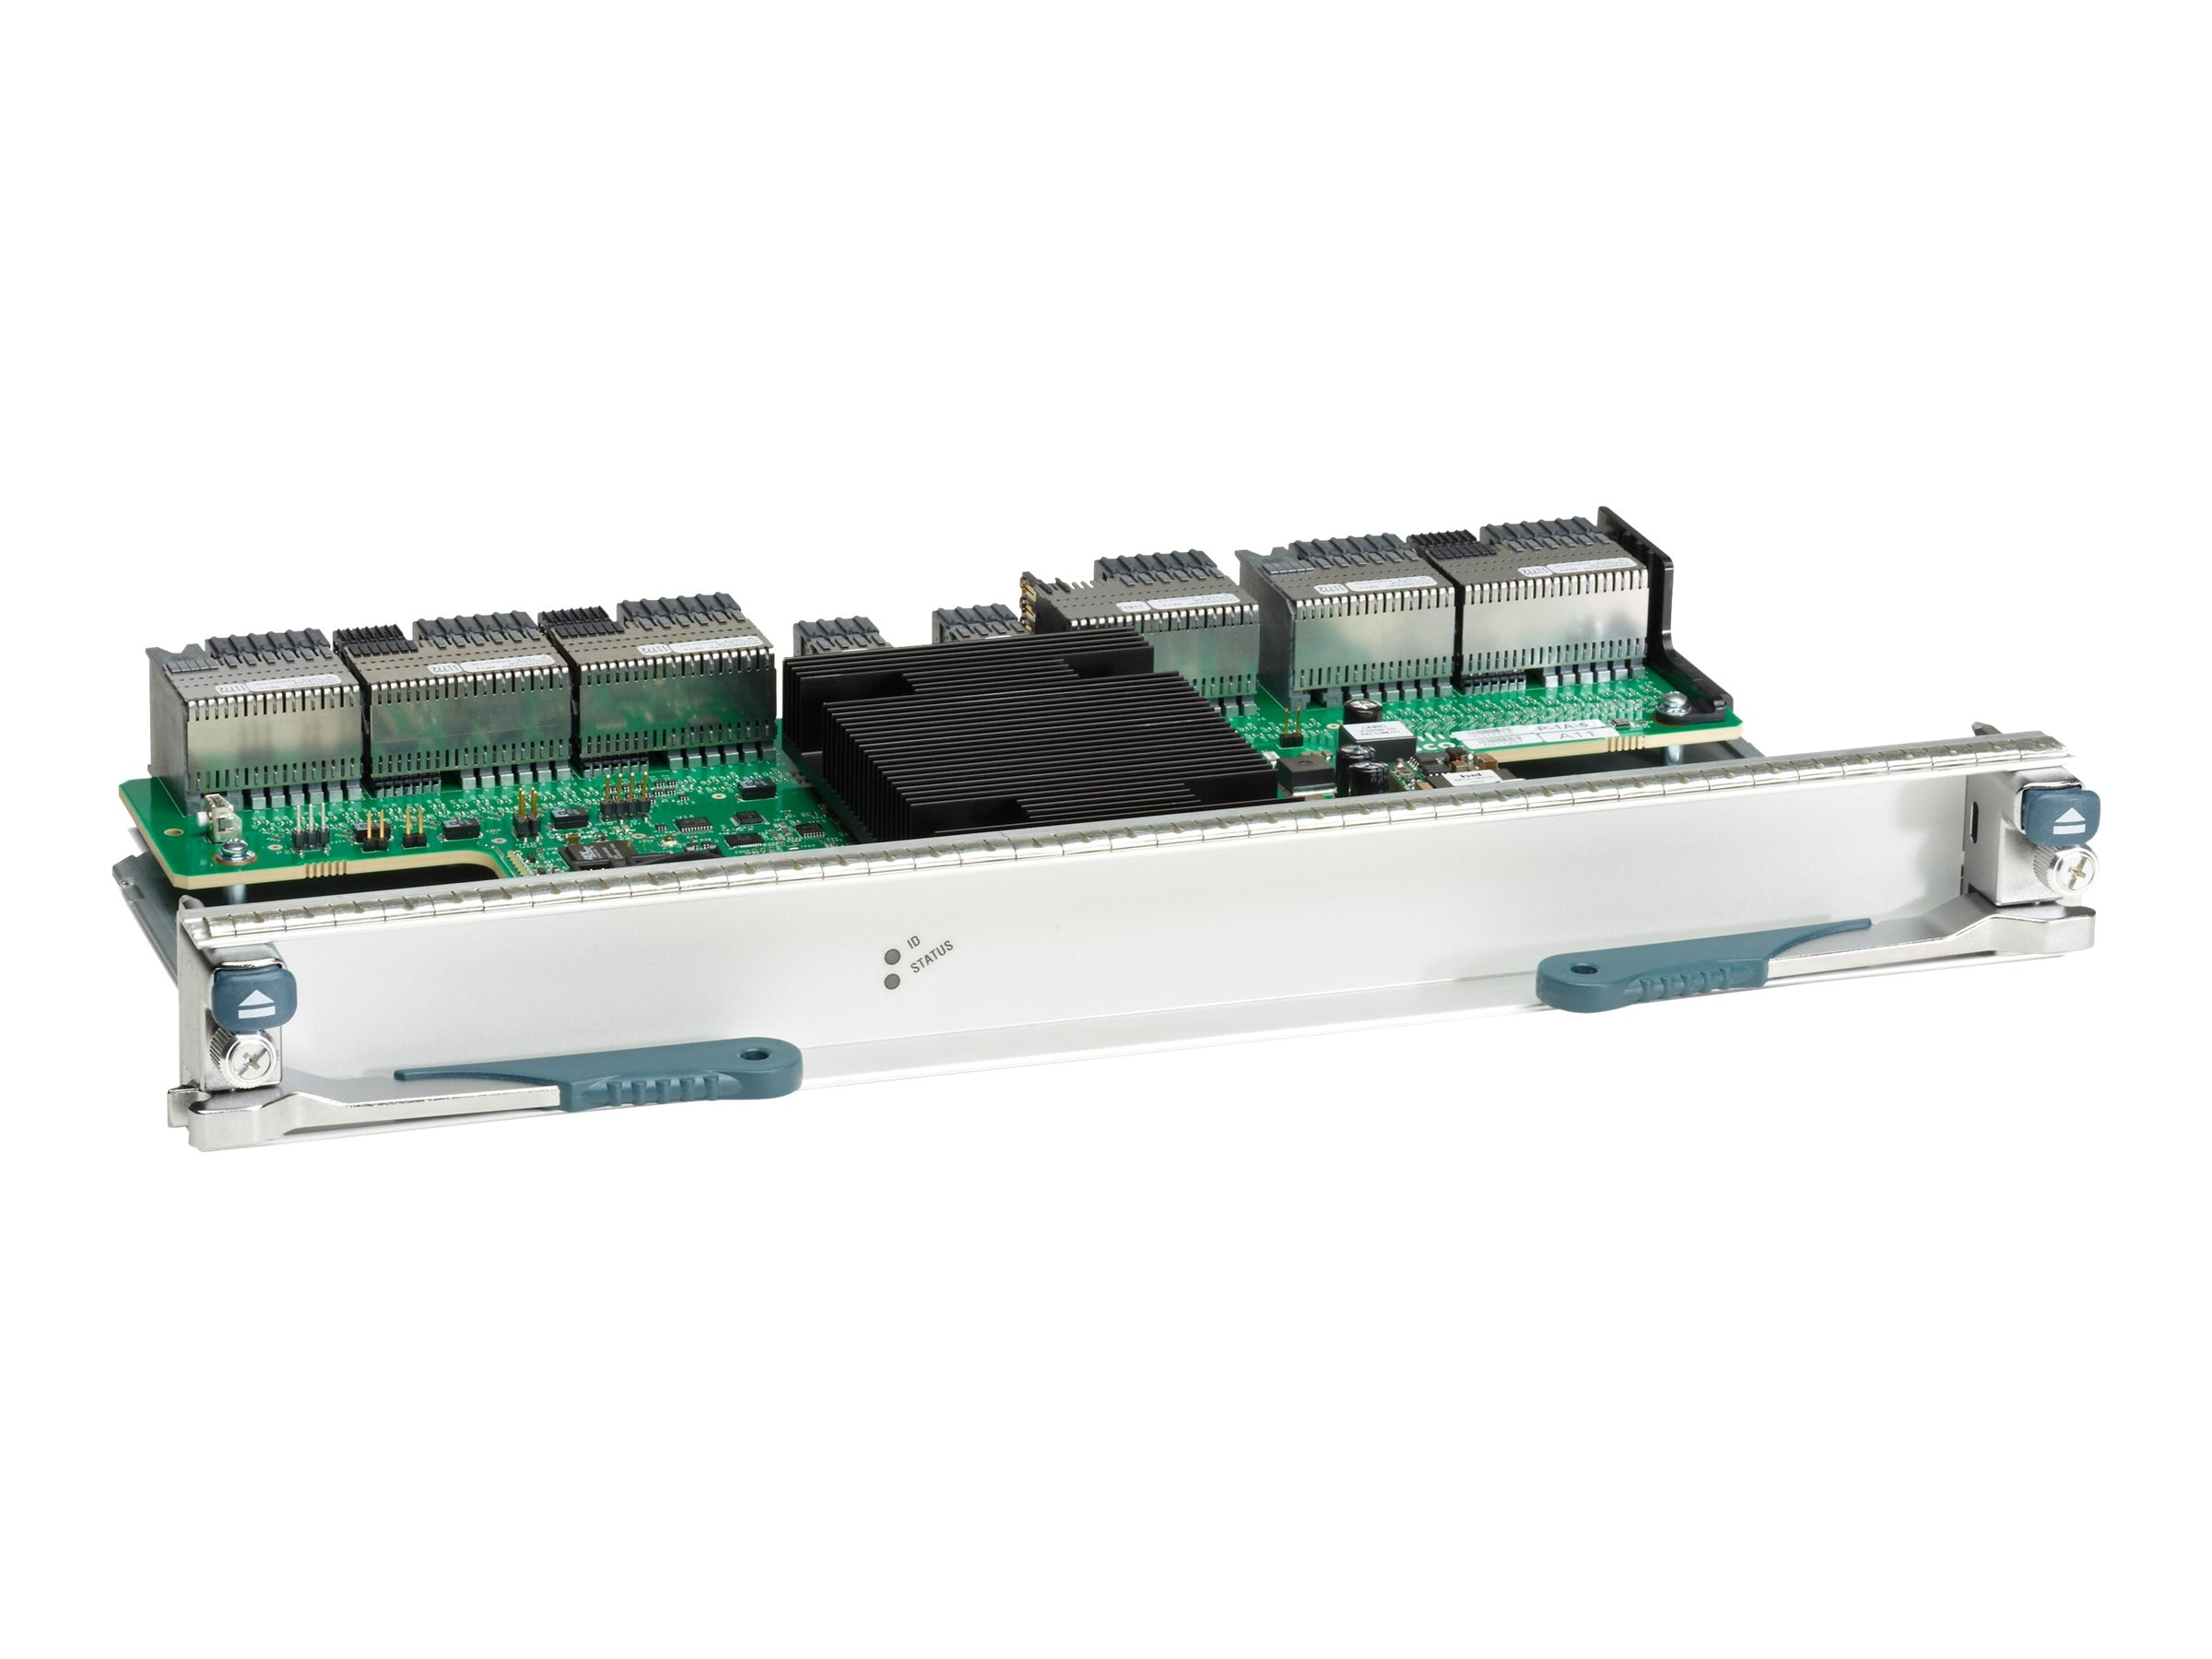 Cisco Nexus 7000 10-Slot Chassis 110Gbps Fabric Module